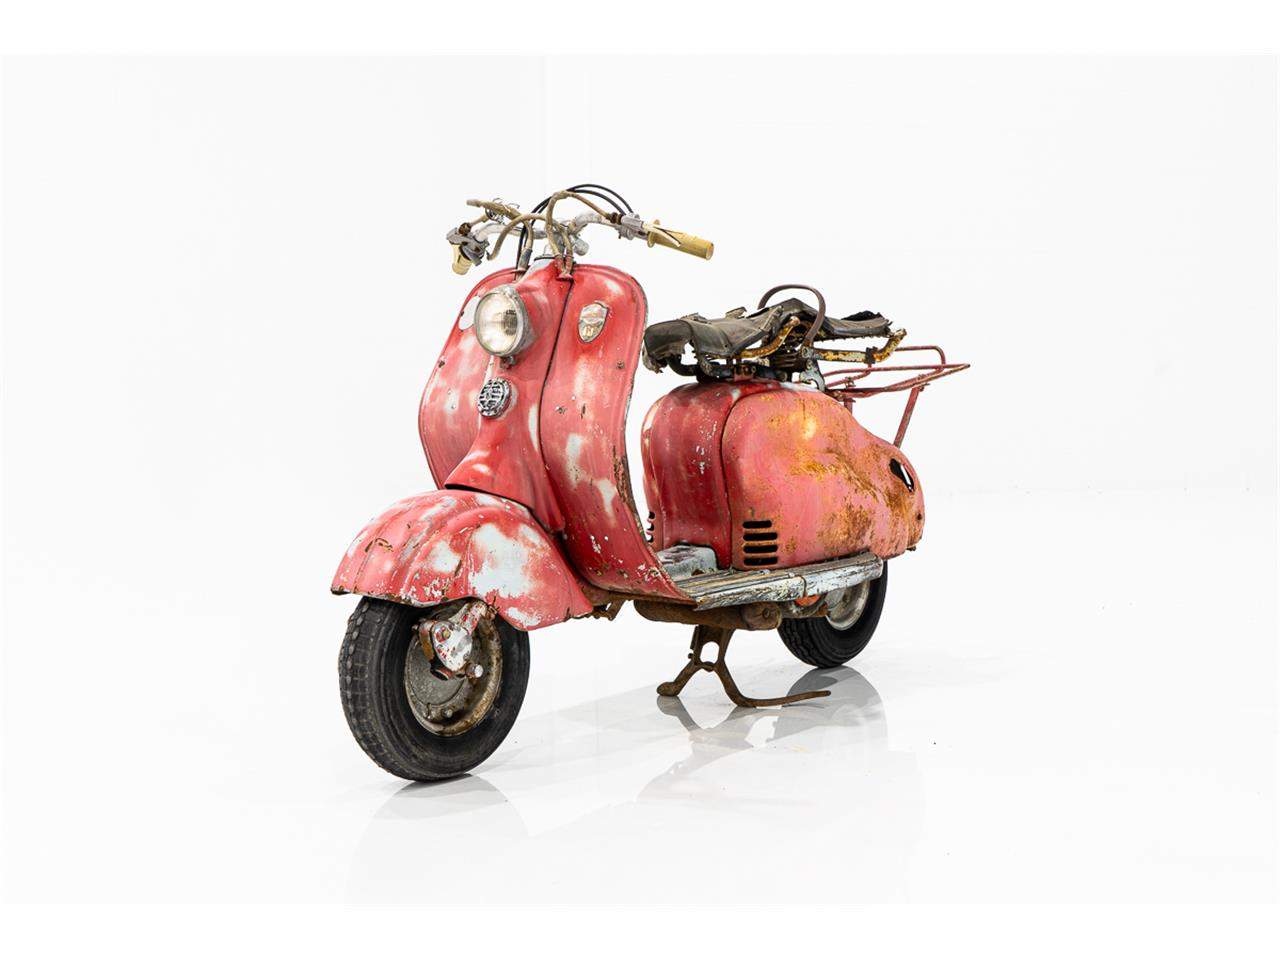 1955 Lambretta Scooter (CC-1415603) for sale in Montreal, Quebec